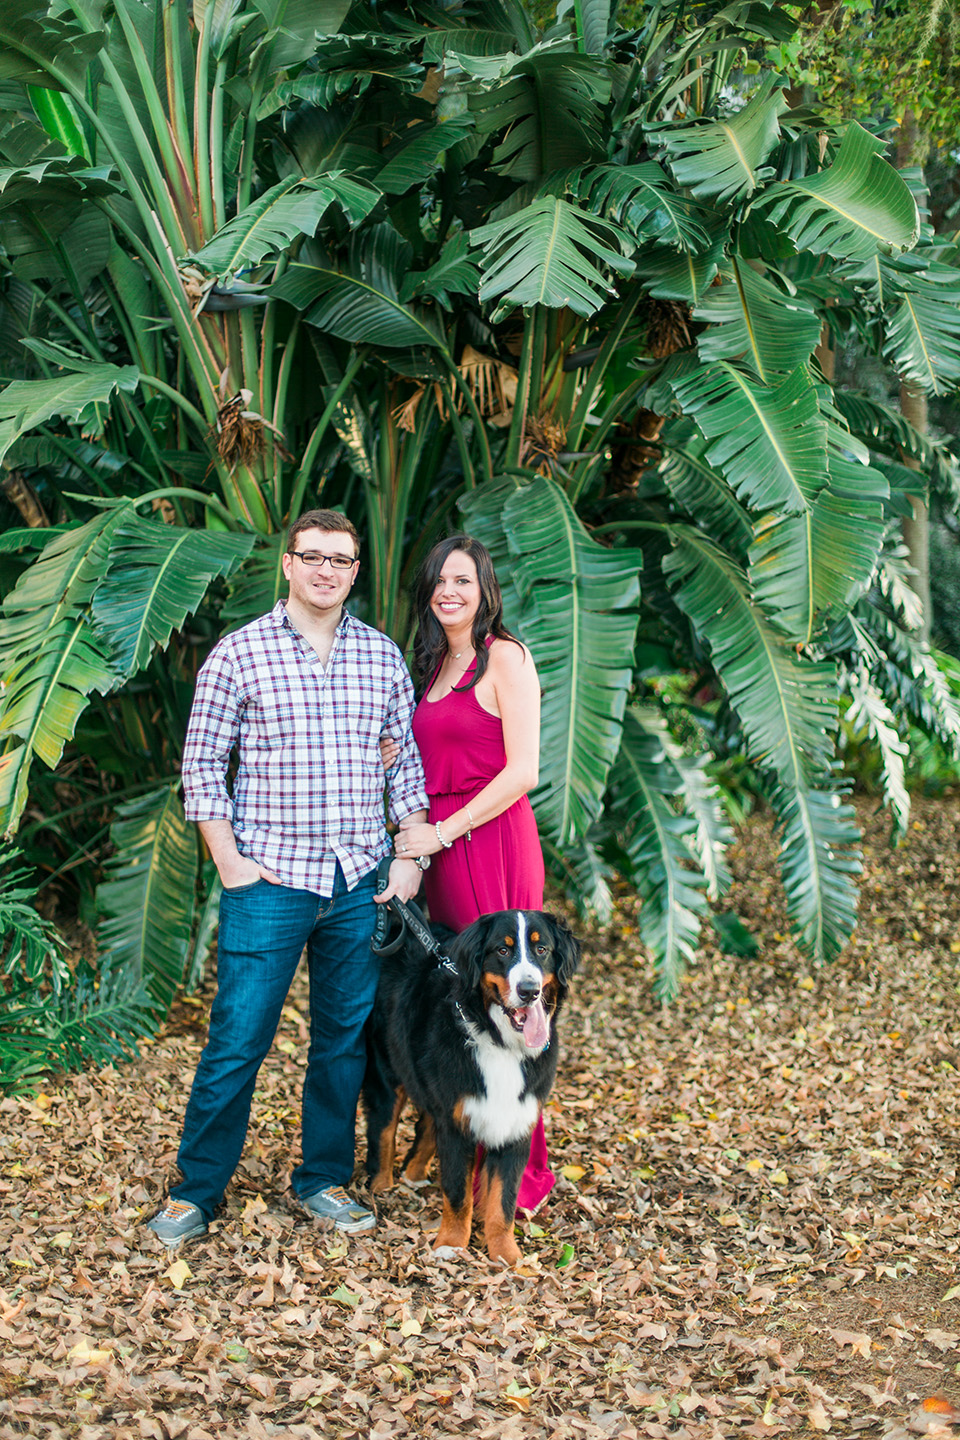 Picture of an engaged couple in downtown Orlando, Florida.  A Bernese Mountain dog is standing with them against tropical trees.